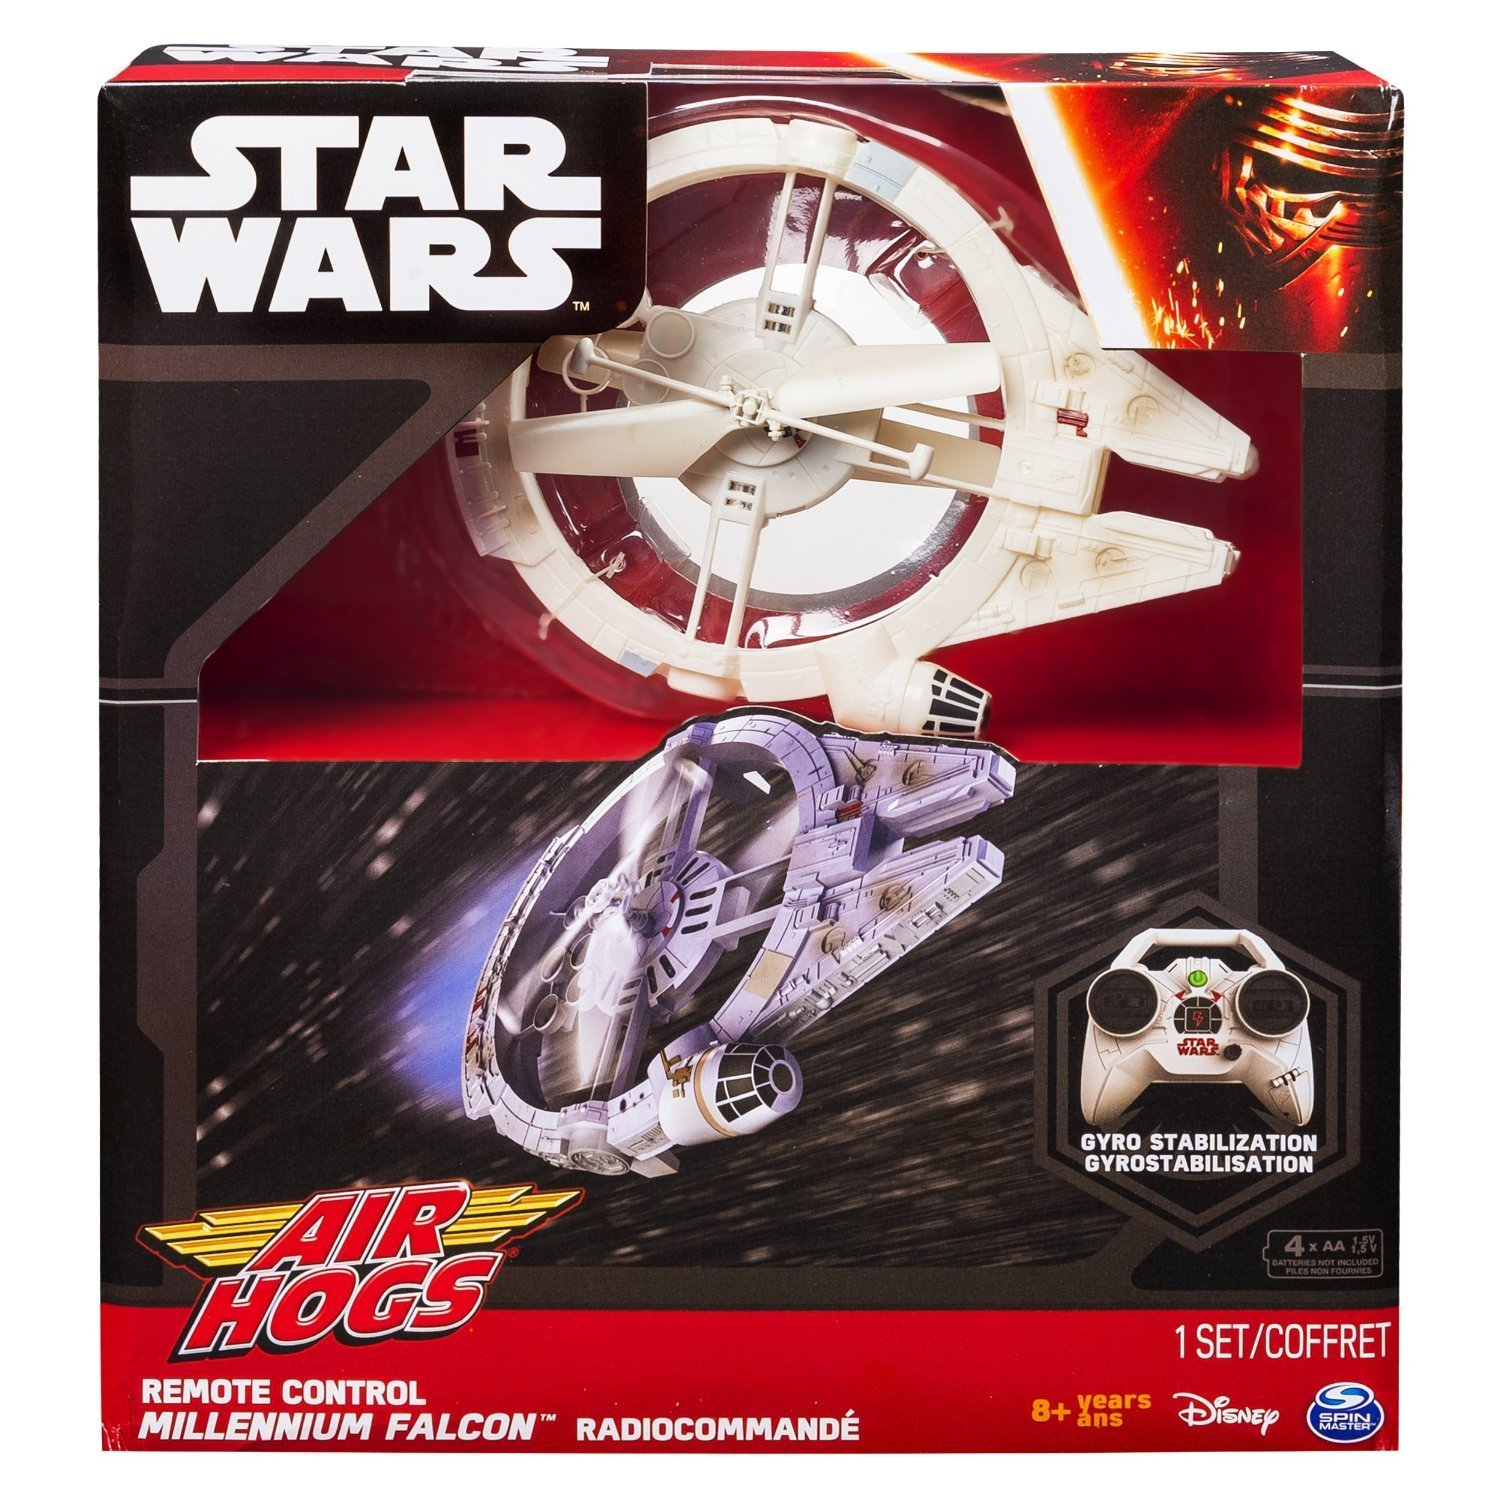 Air Hogs Star Wars The Force Awakens Millennium Falcon Drone